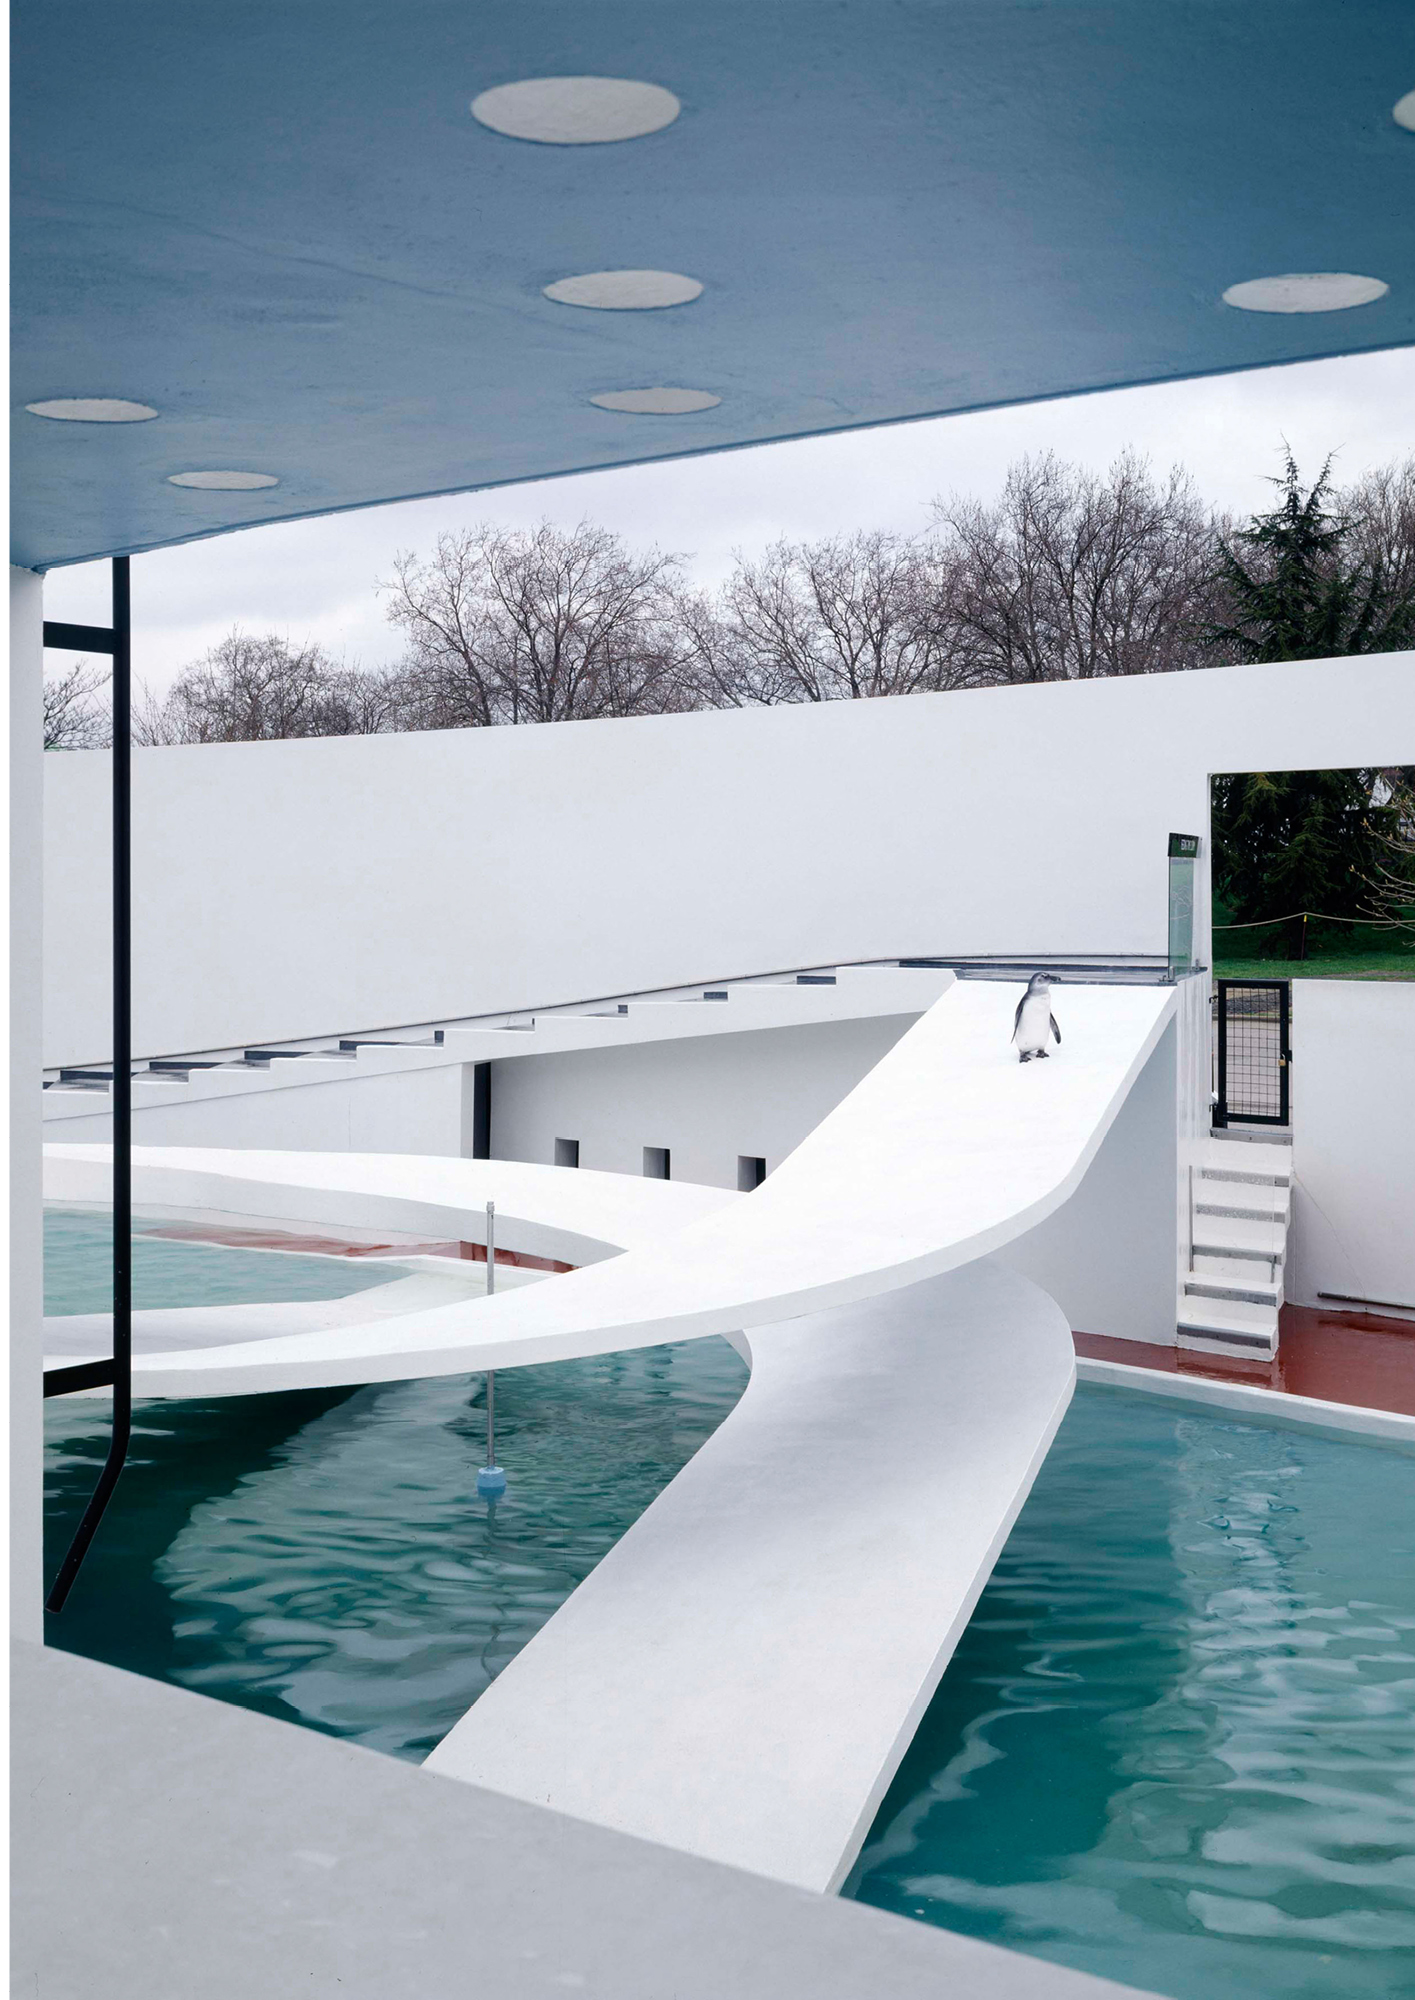 Tecton's Bauhaus-inspired penguin pool at the London Zoo, Alamy